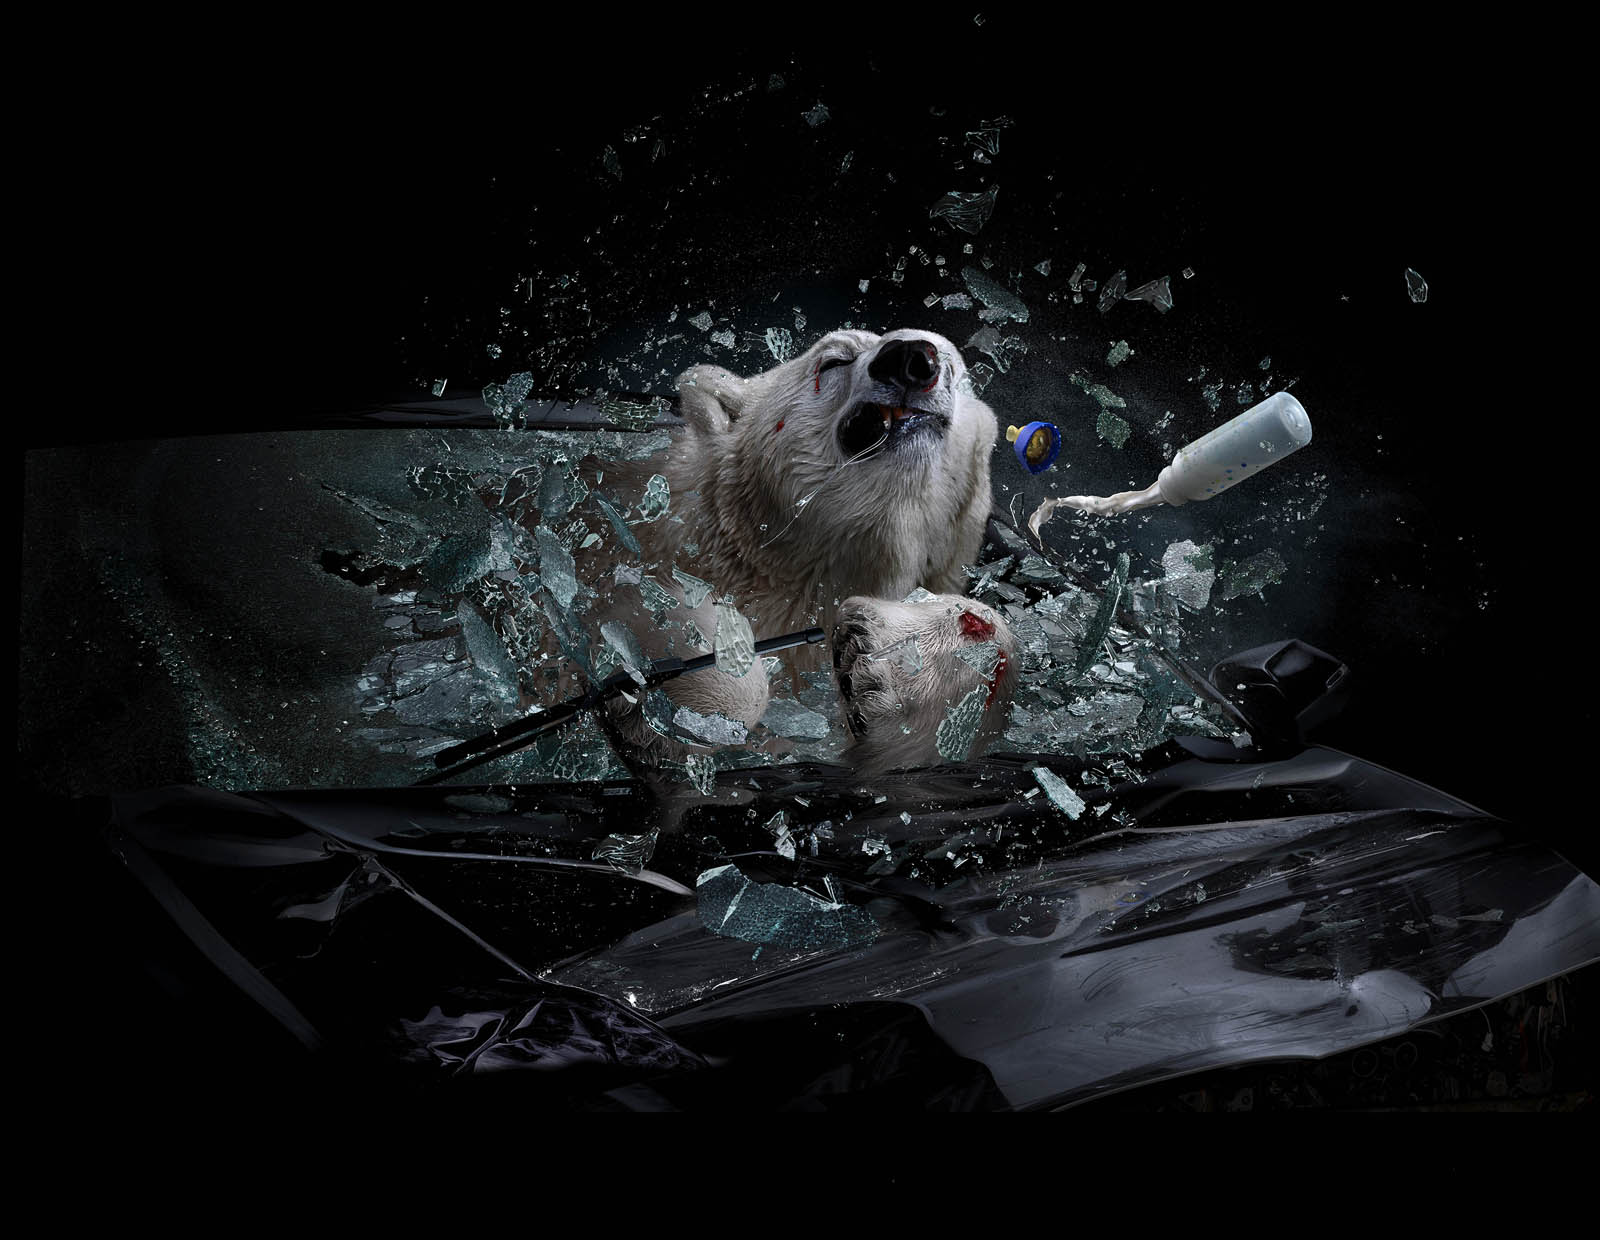 Car Crash BEAR_simplify copy(Resize).jpg